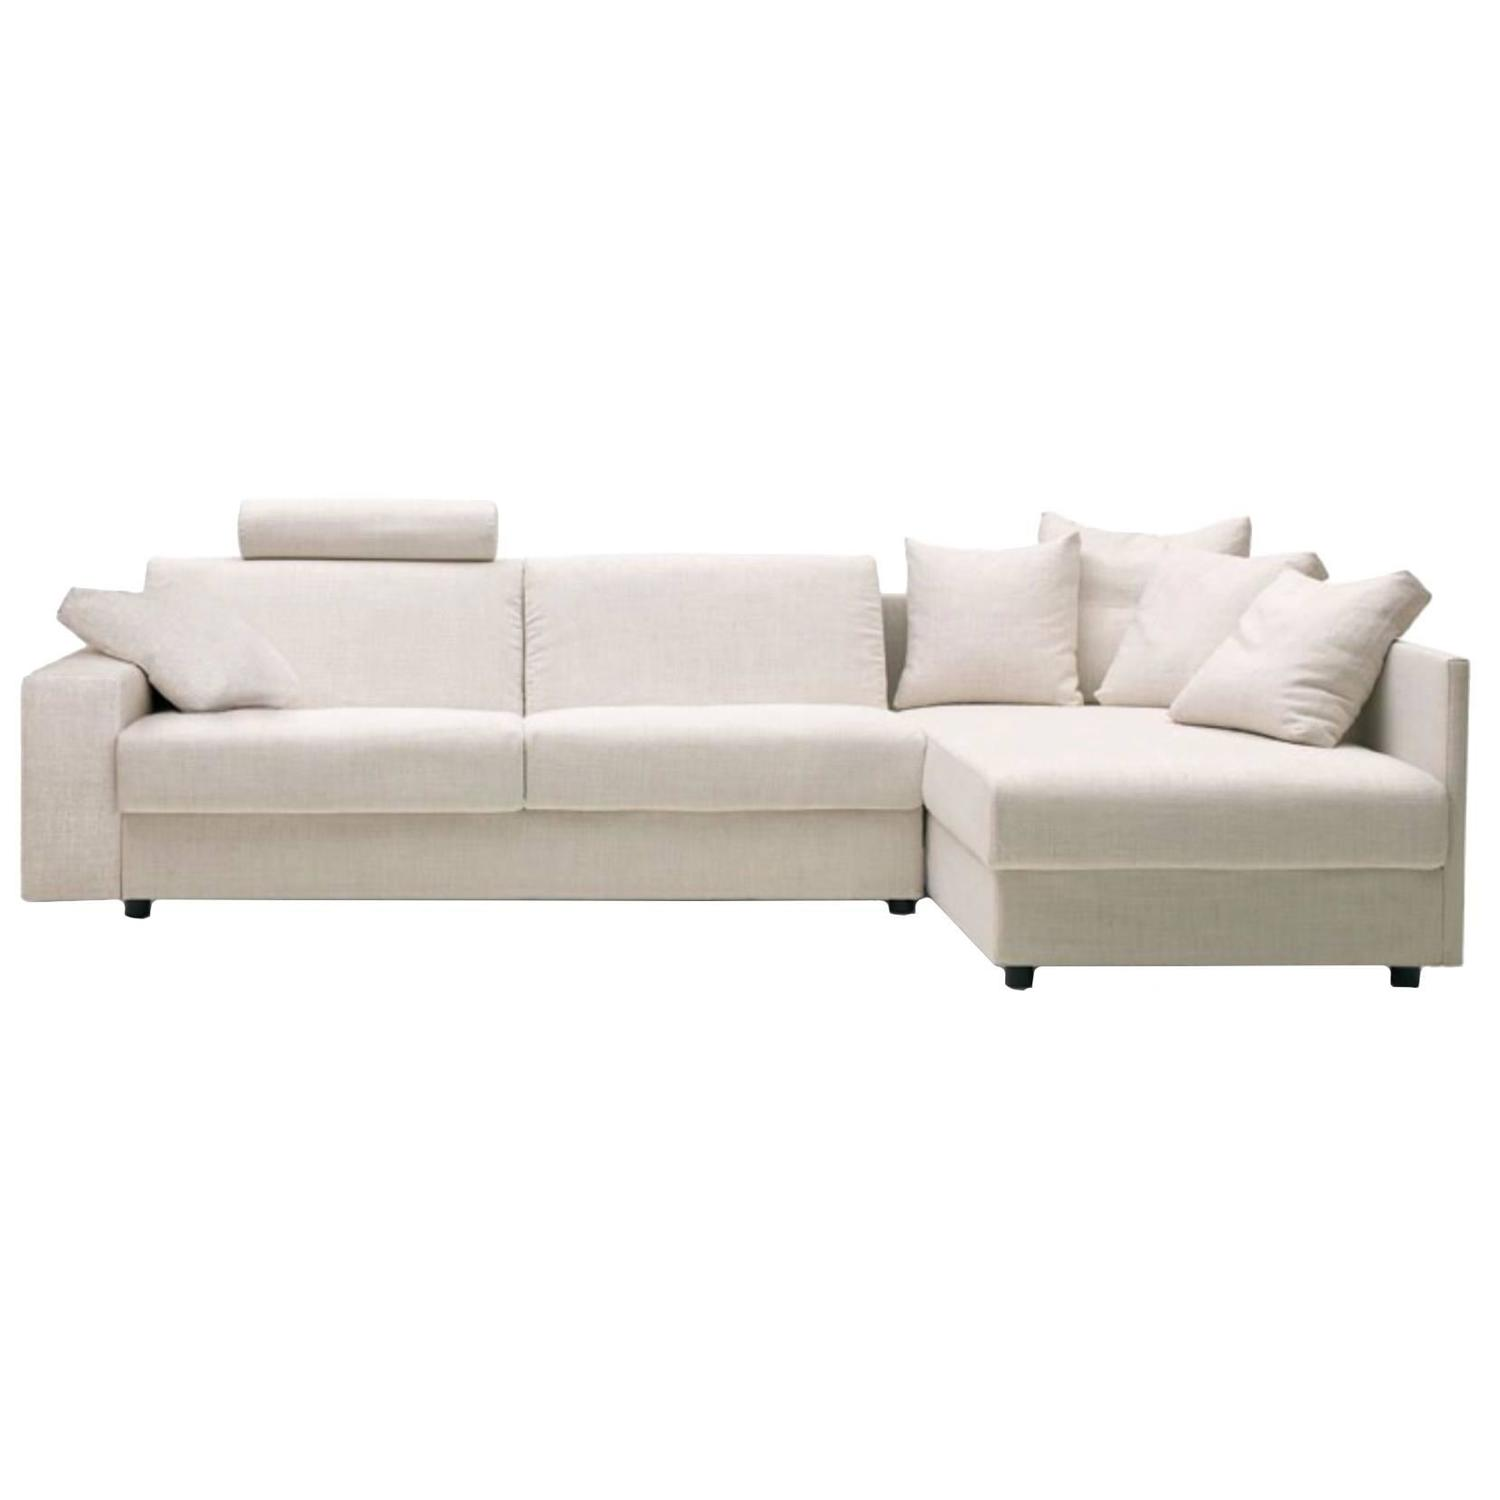 Modern italian sofa bed sectional sb41 fabric new made for Modern italian furniture